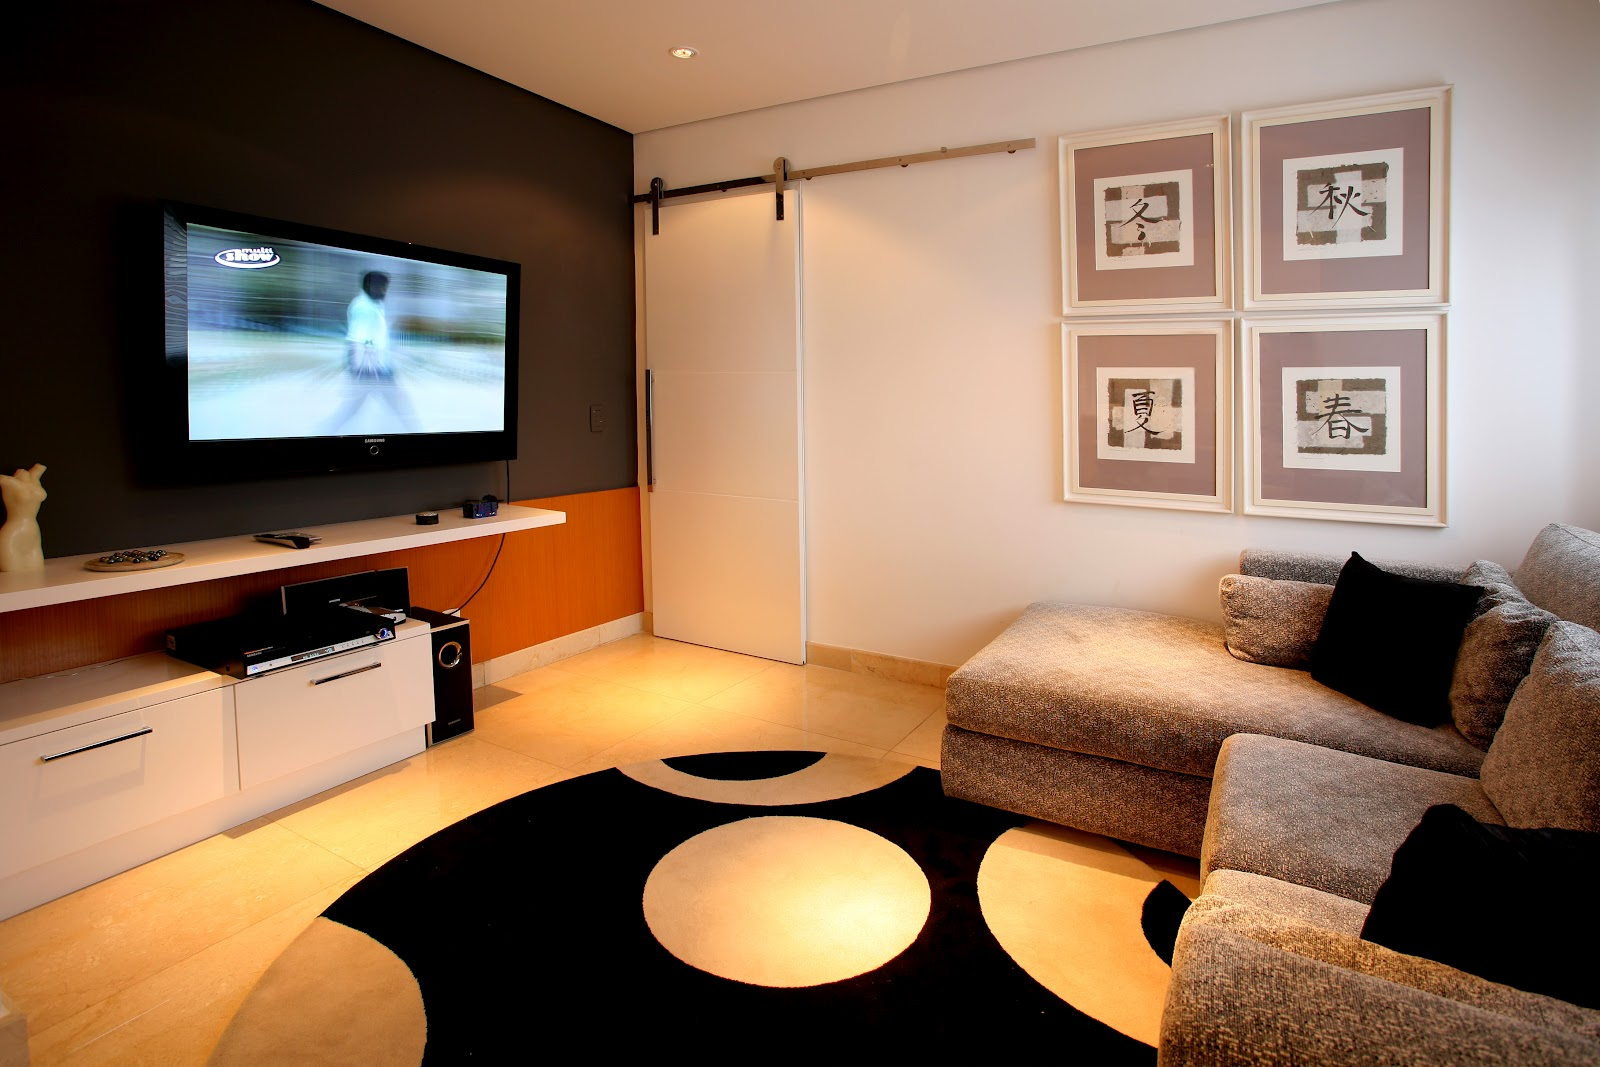 A Sala De Estar X Home Theater Papo De Design -> Tapete Sala Home